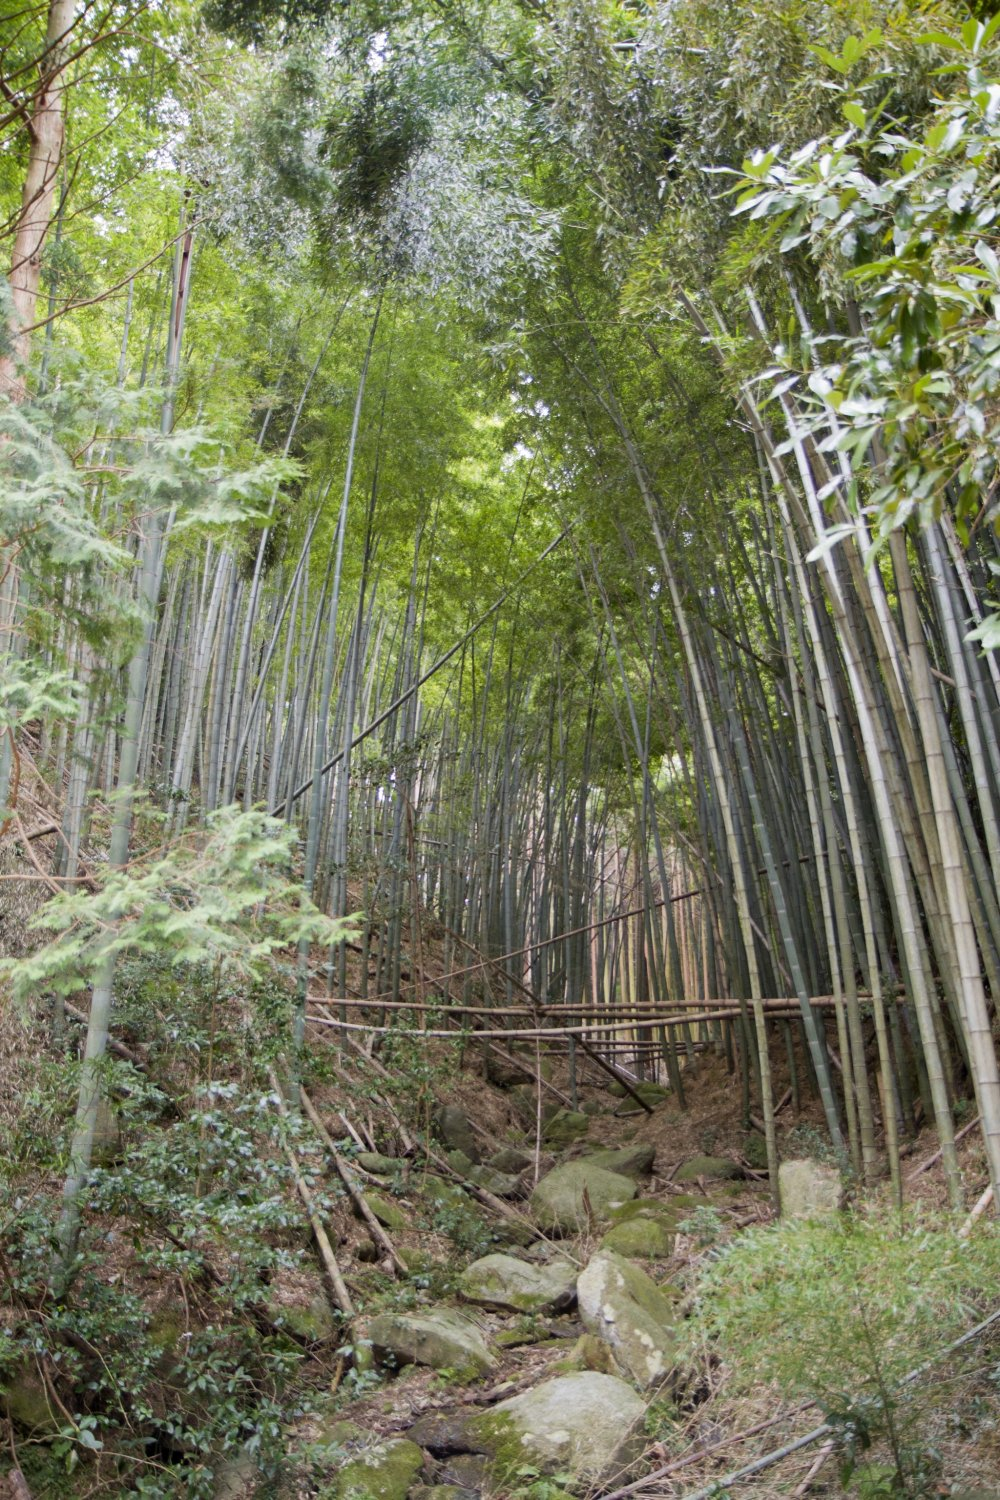 Hear the clacking of a bamboo grove in the spring breeze near the trailhead